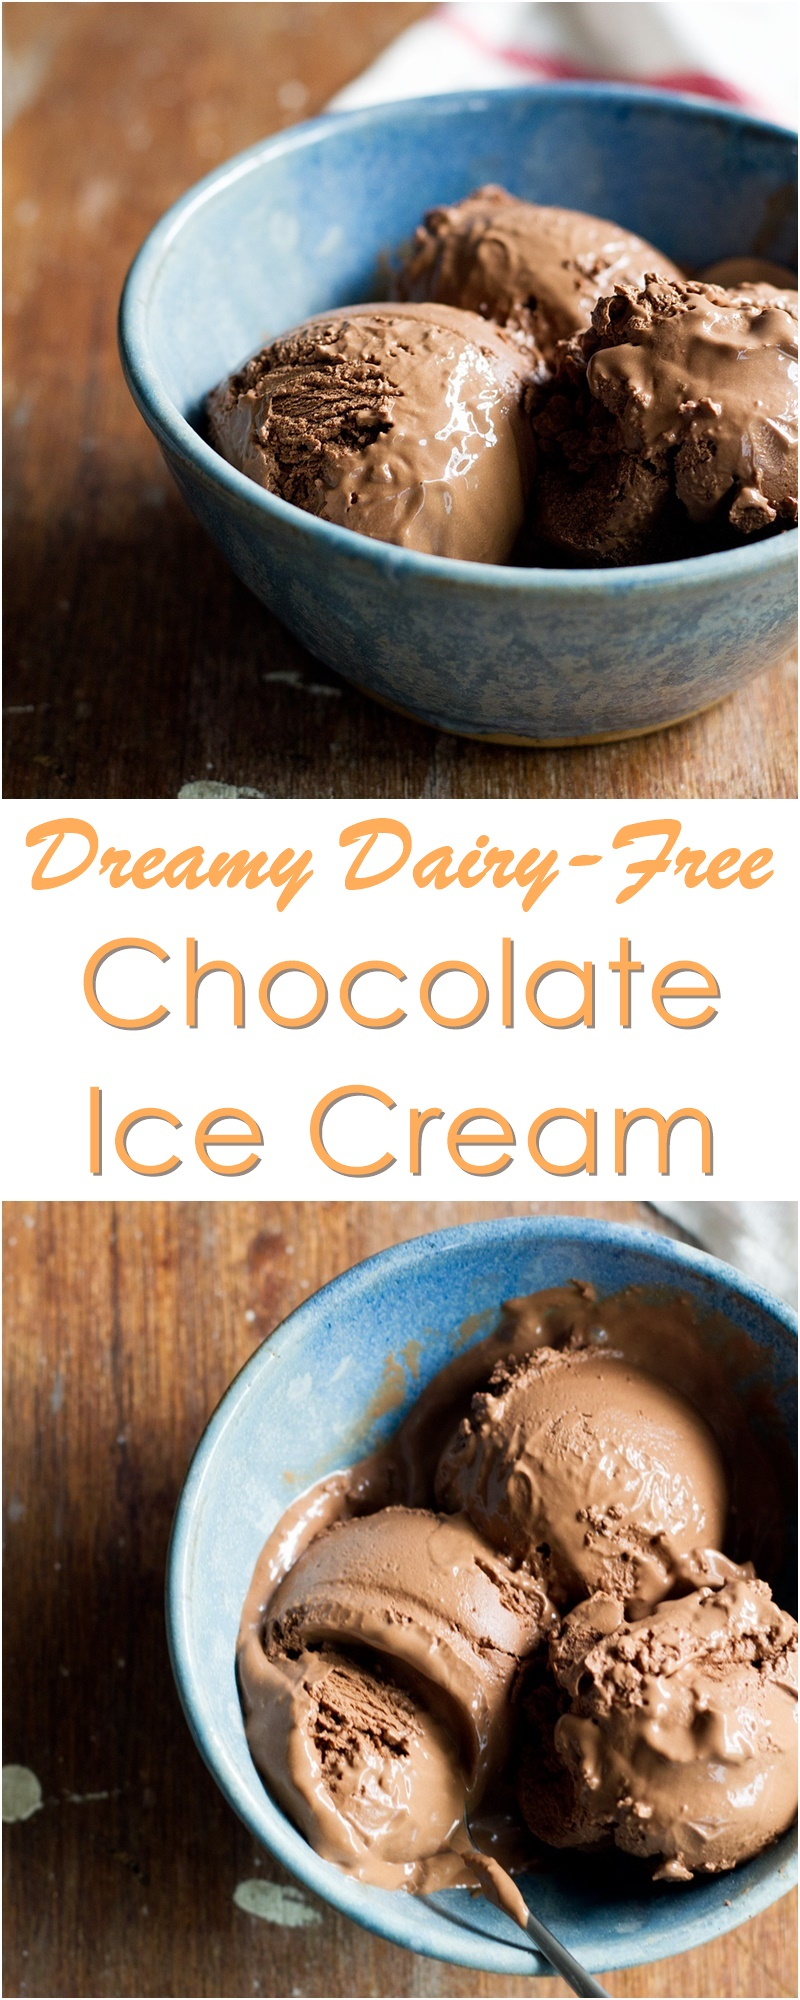 Vegan Chocolate Ice Cream Recipe - Easy, uses everyday dairy-free ingredients and NO coconut!